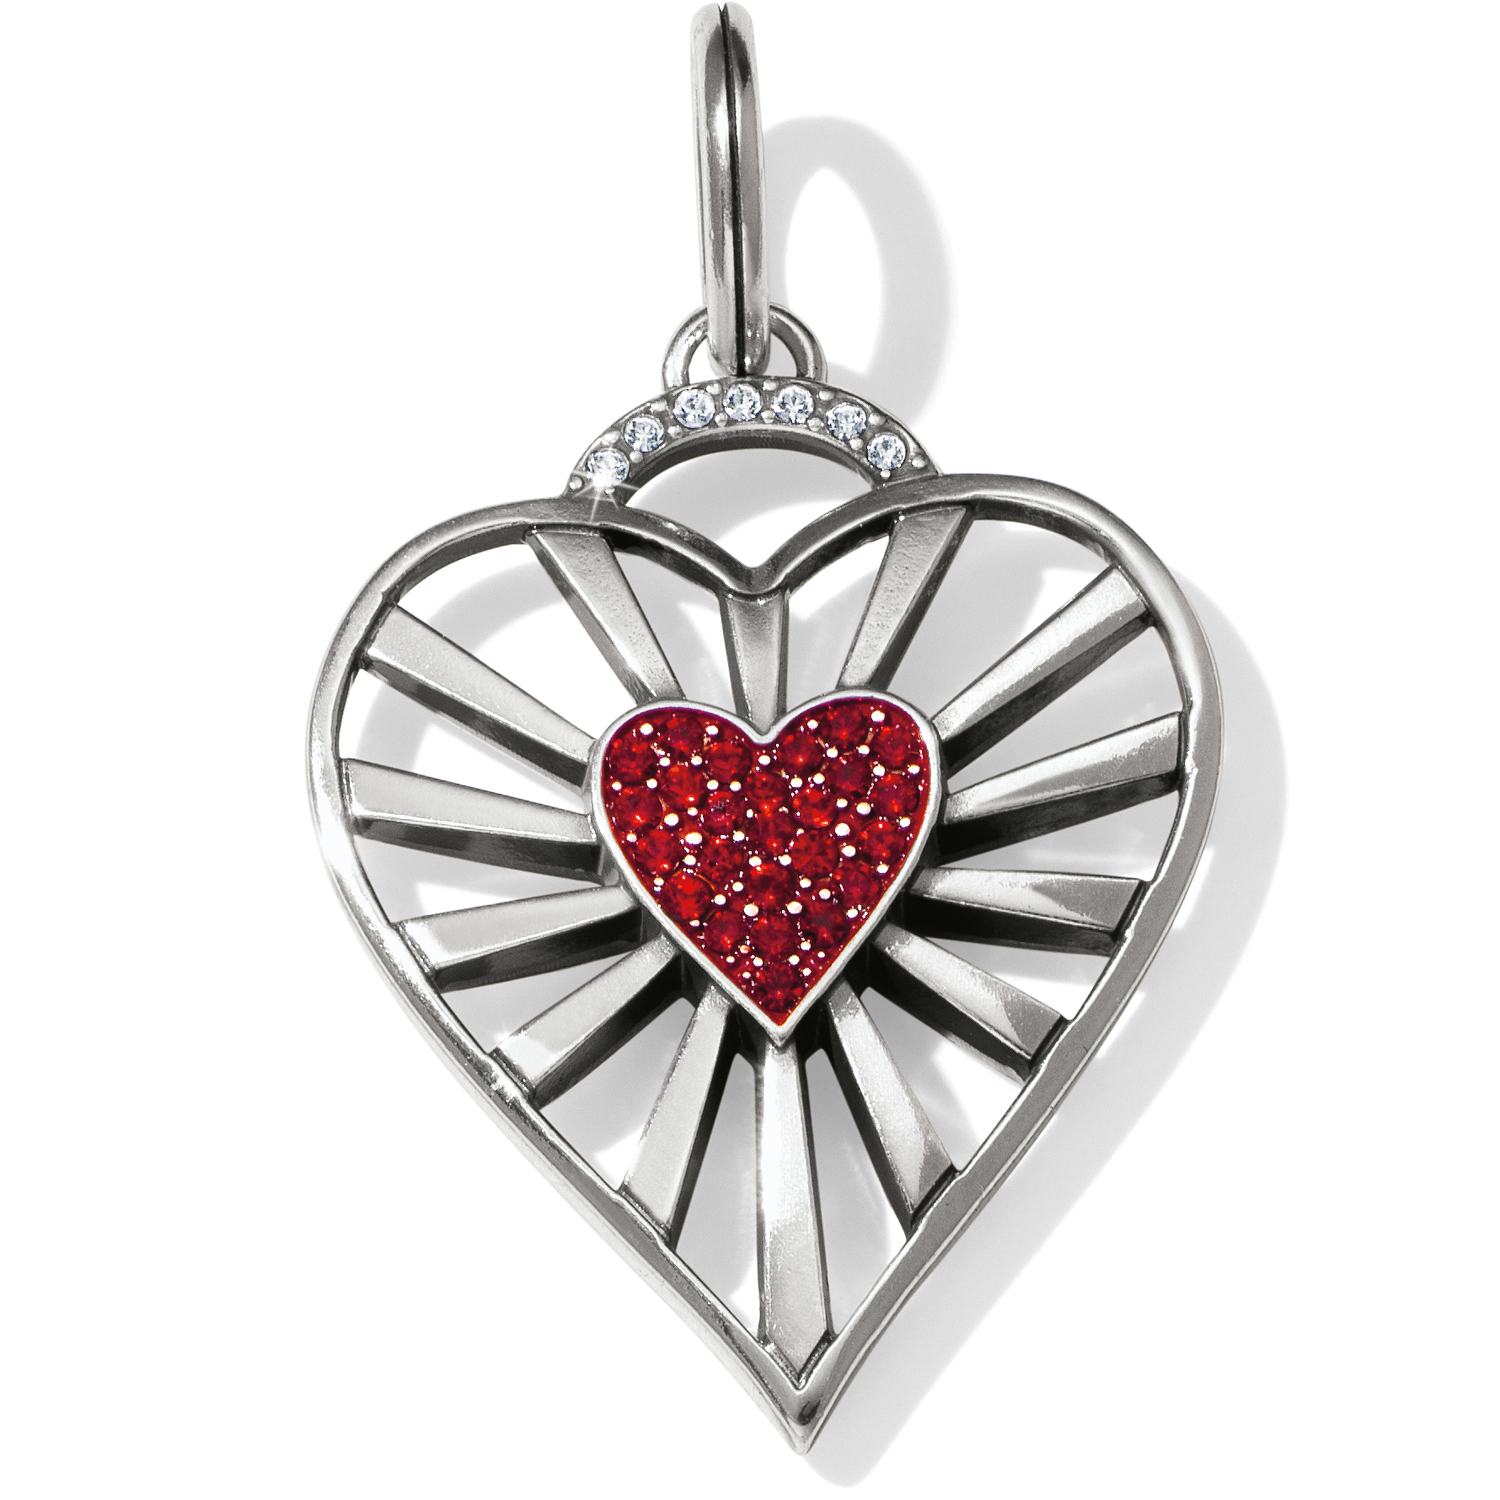 Brighton Vibrant Heart Amulet Product